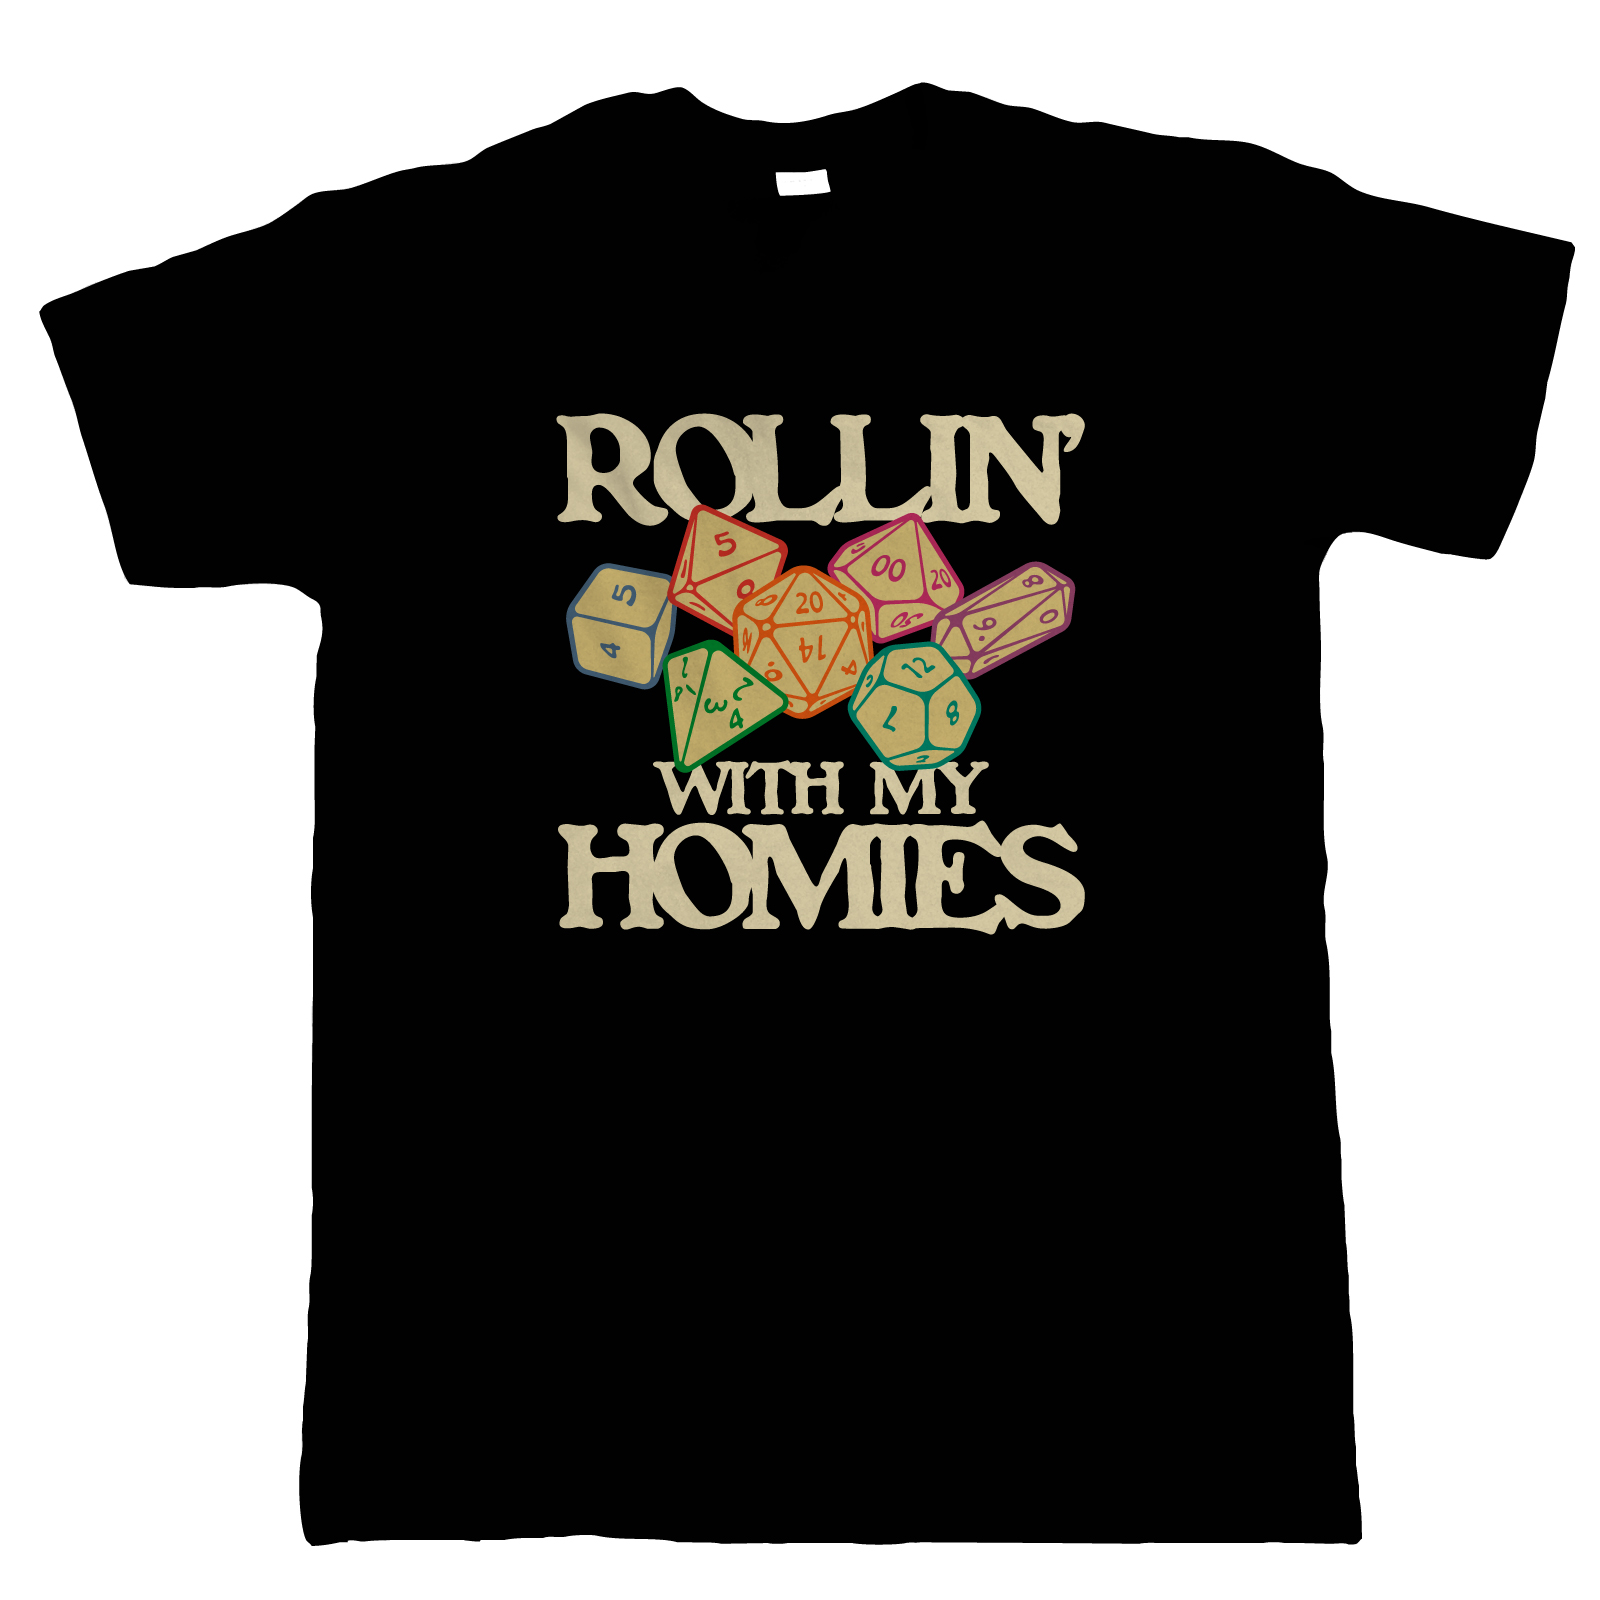 Rollin With My Homies Mens T-Shirt | Paladin Kingmaker Rogues Knight Tower Shield Magic | Dungeons Dragon D&D DND Pathfinder 3.5 Tarrasque | Geek Gift Him Dad